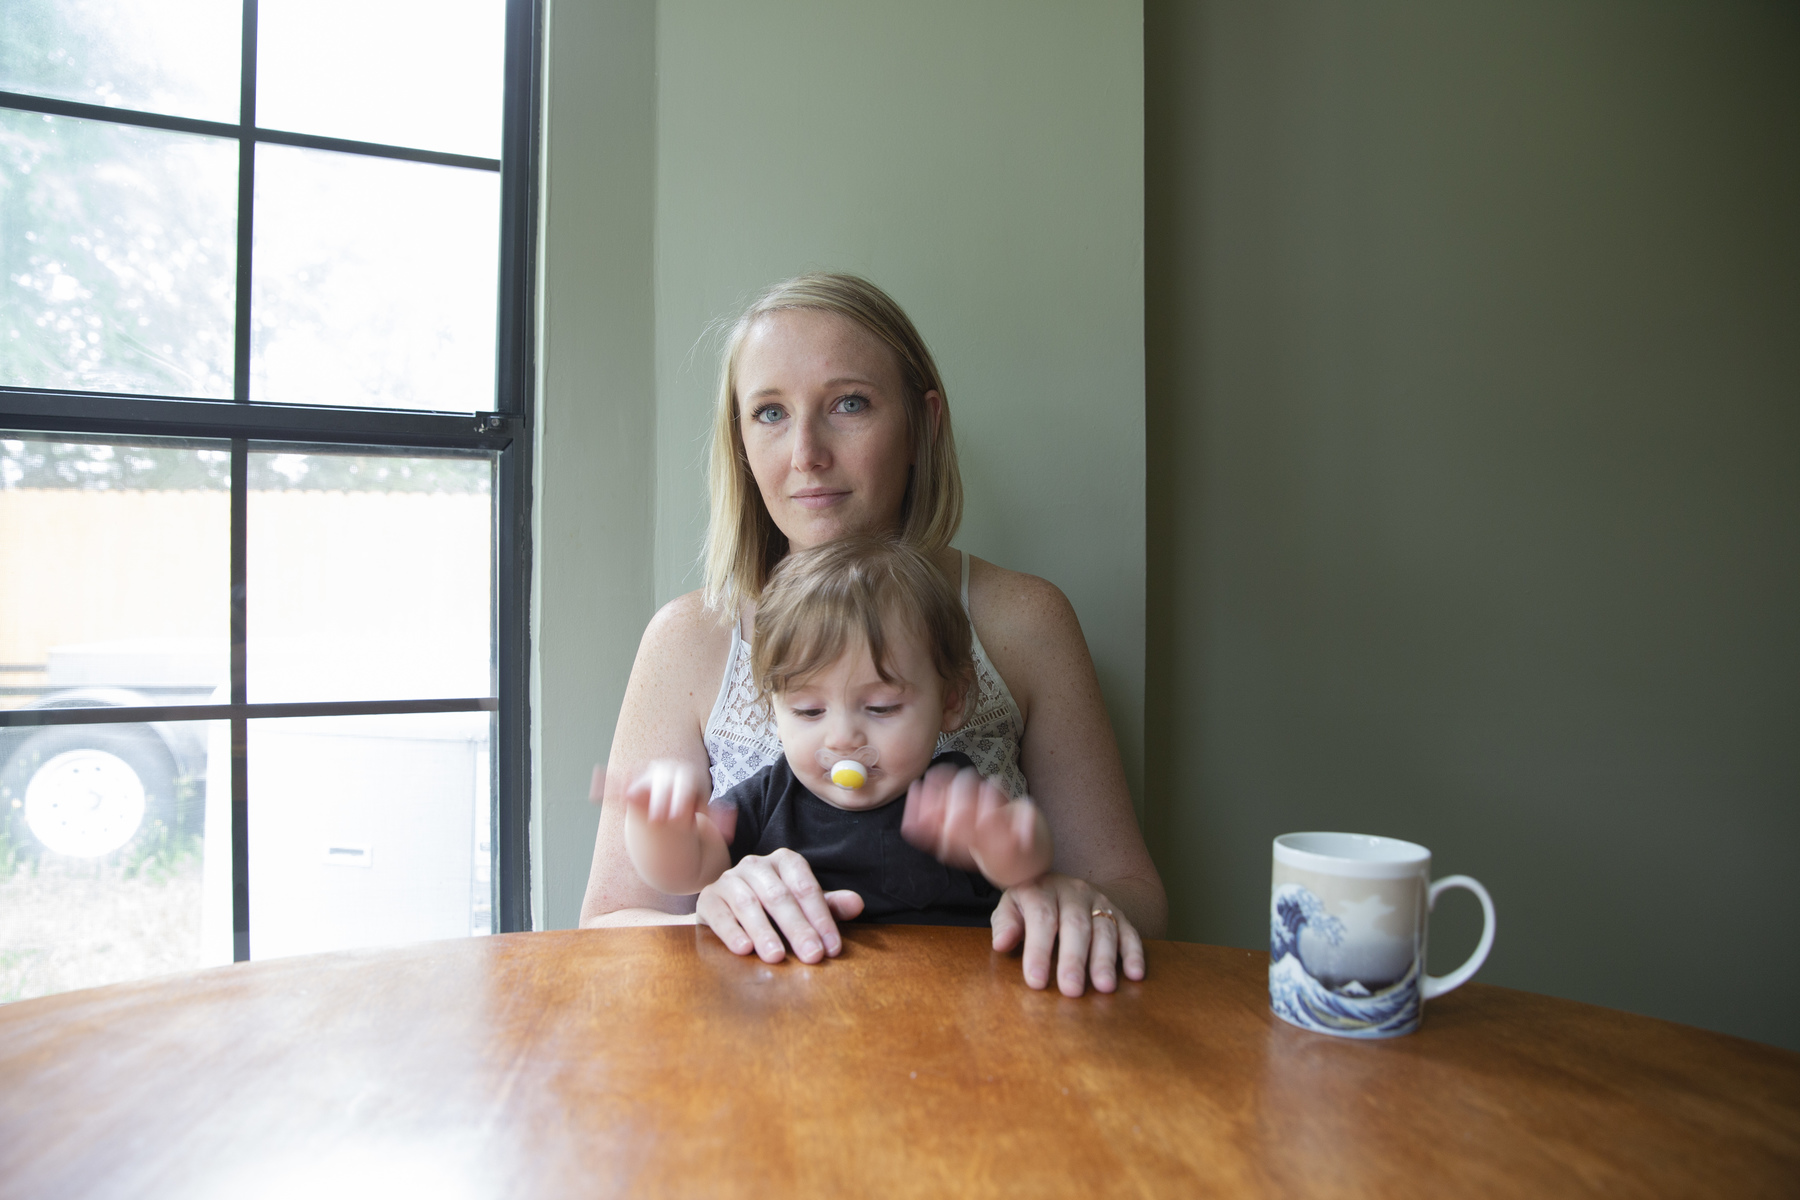 Kylie Mohr in her home with her son Lincoln Mohr